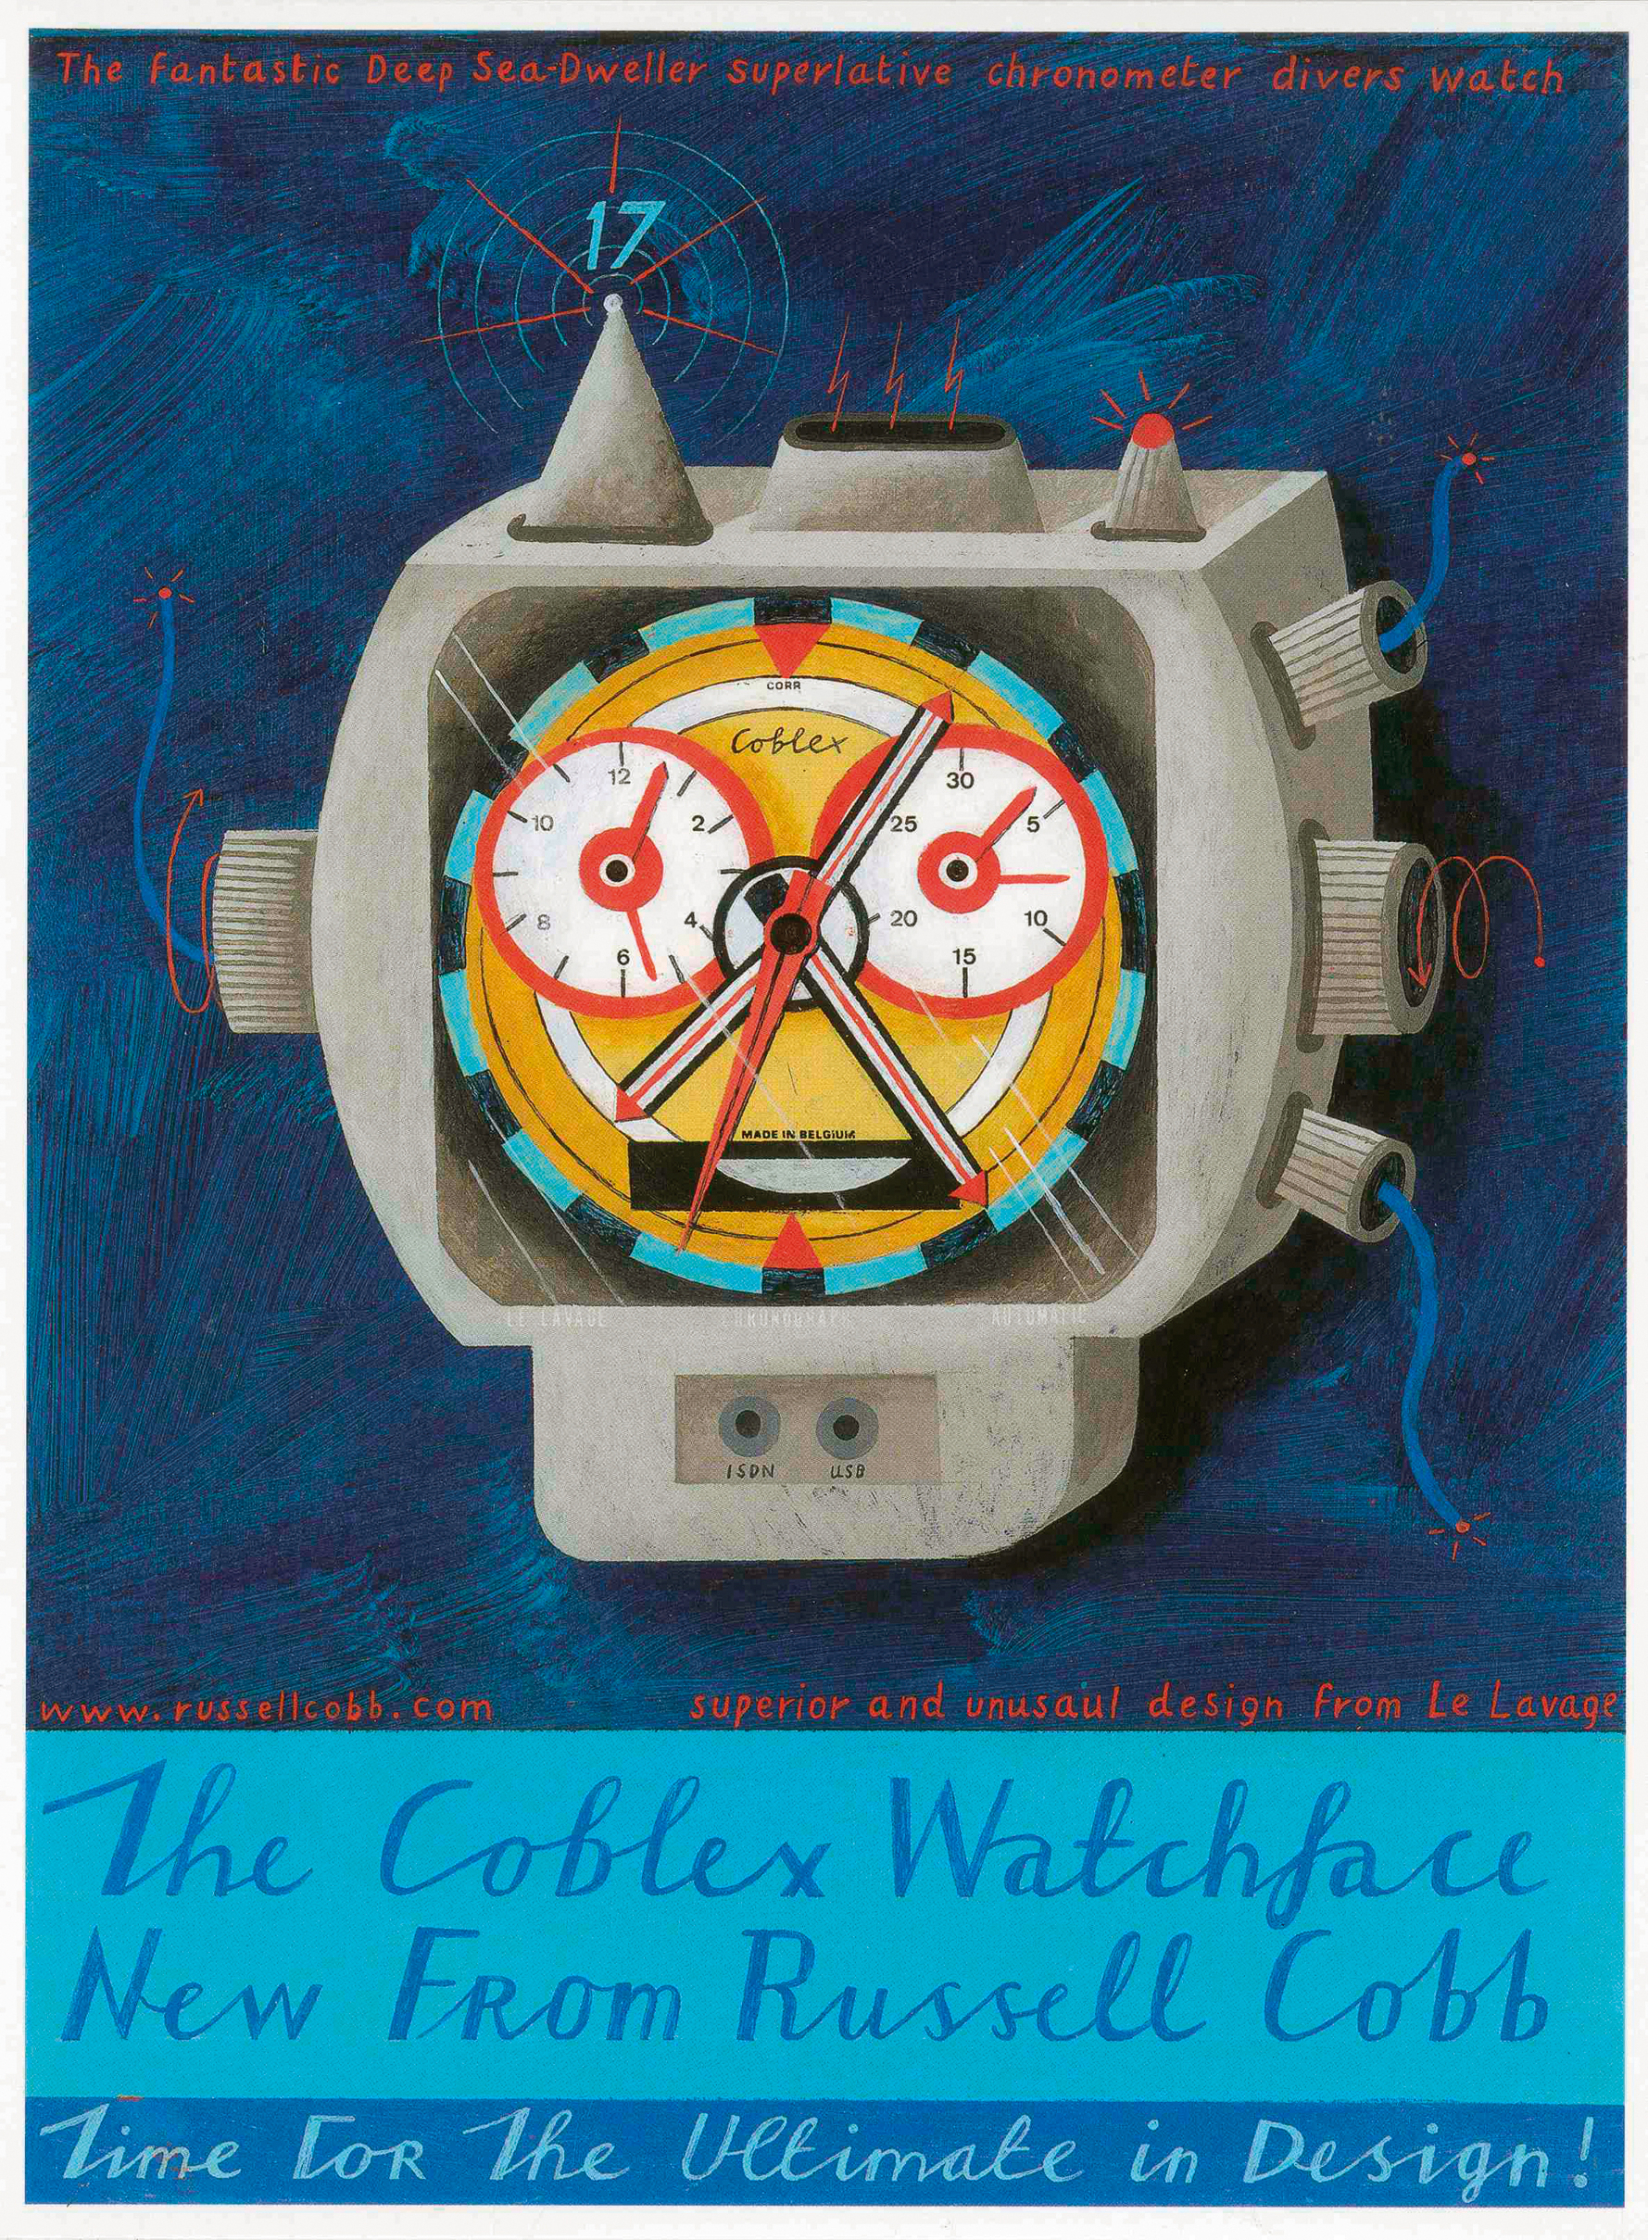 The Coblex Watch